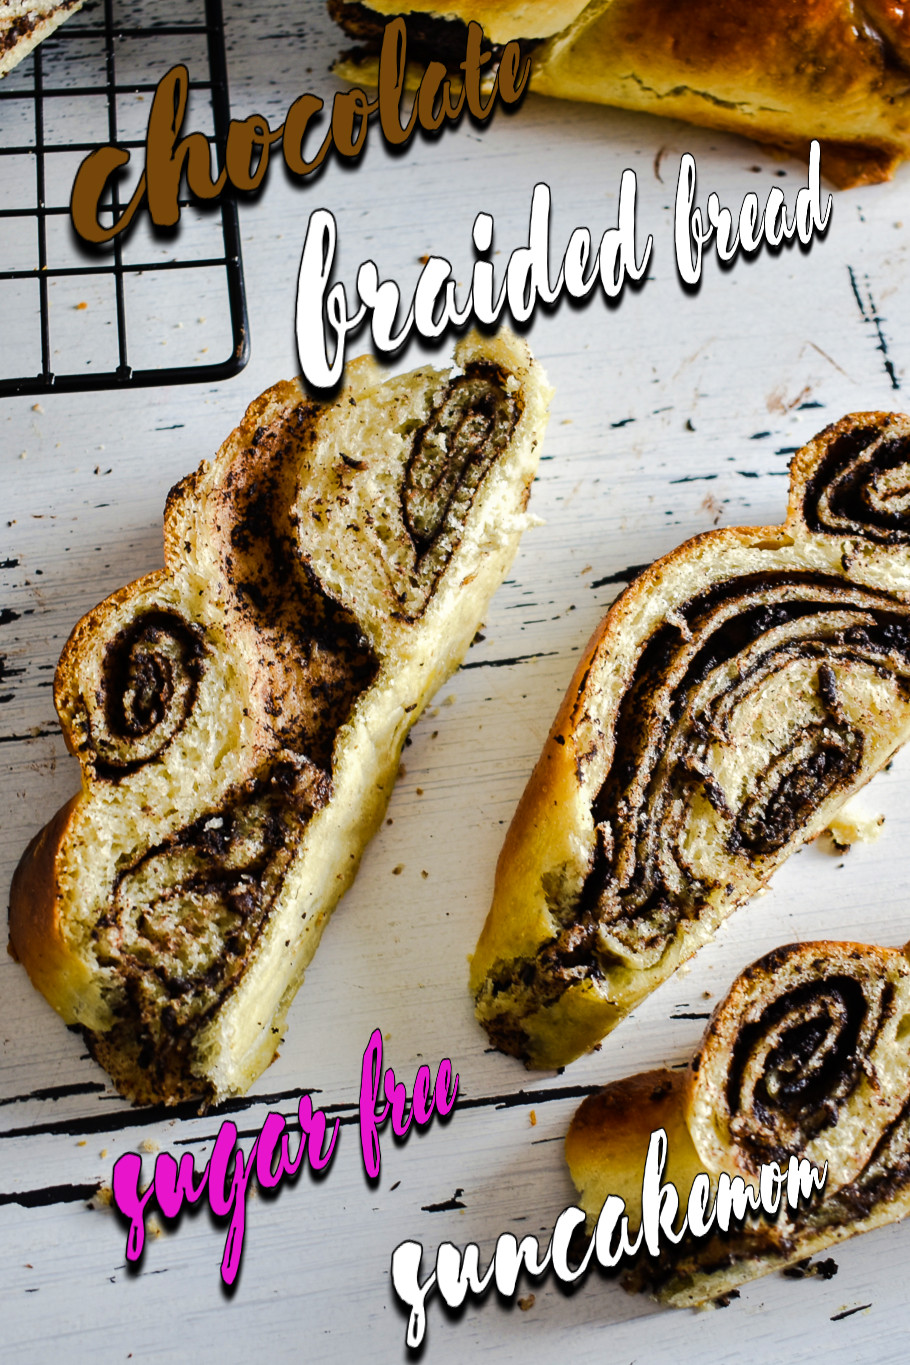 Braided-bread-recipe-with-chocolate-filling-Pinterest-SunCakeMom